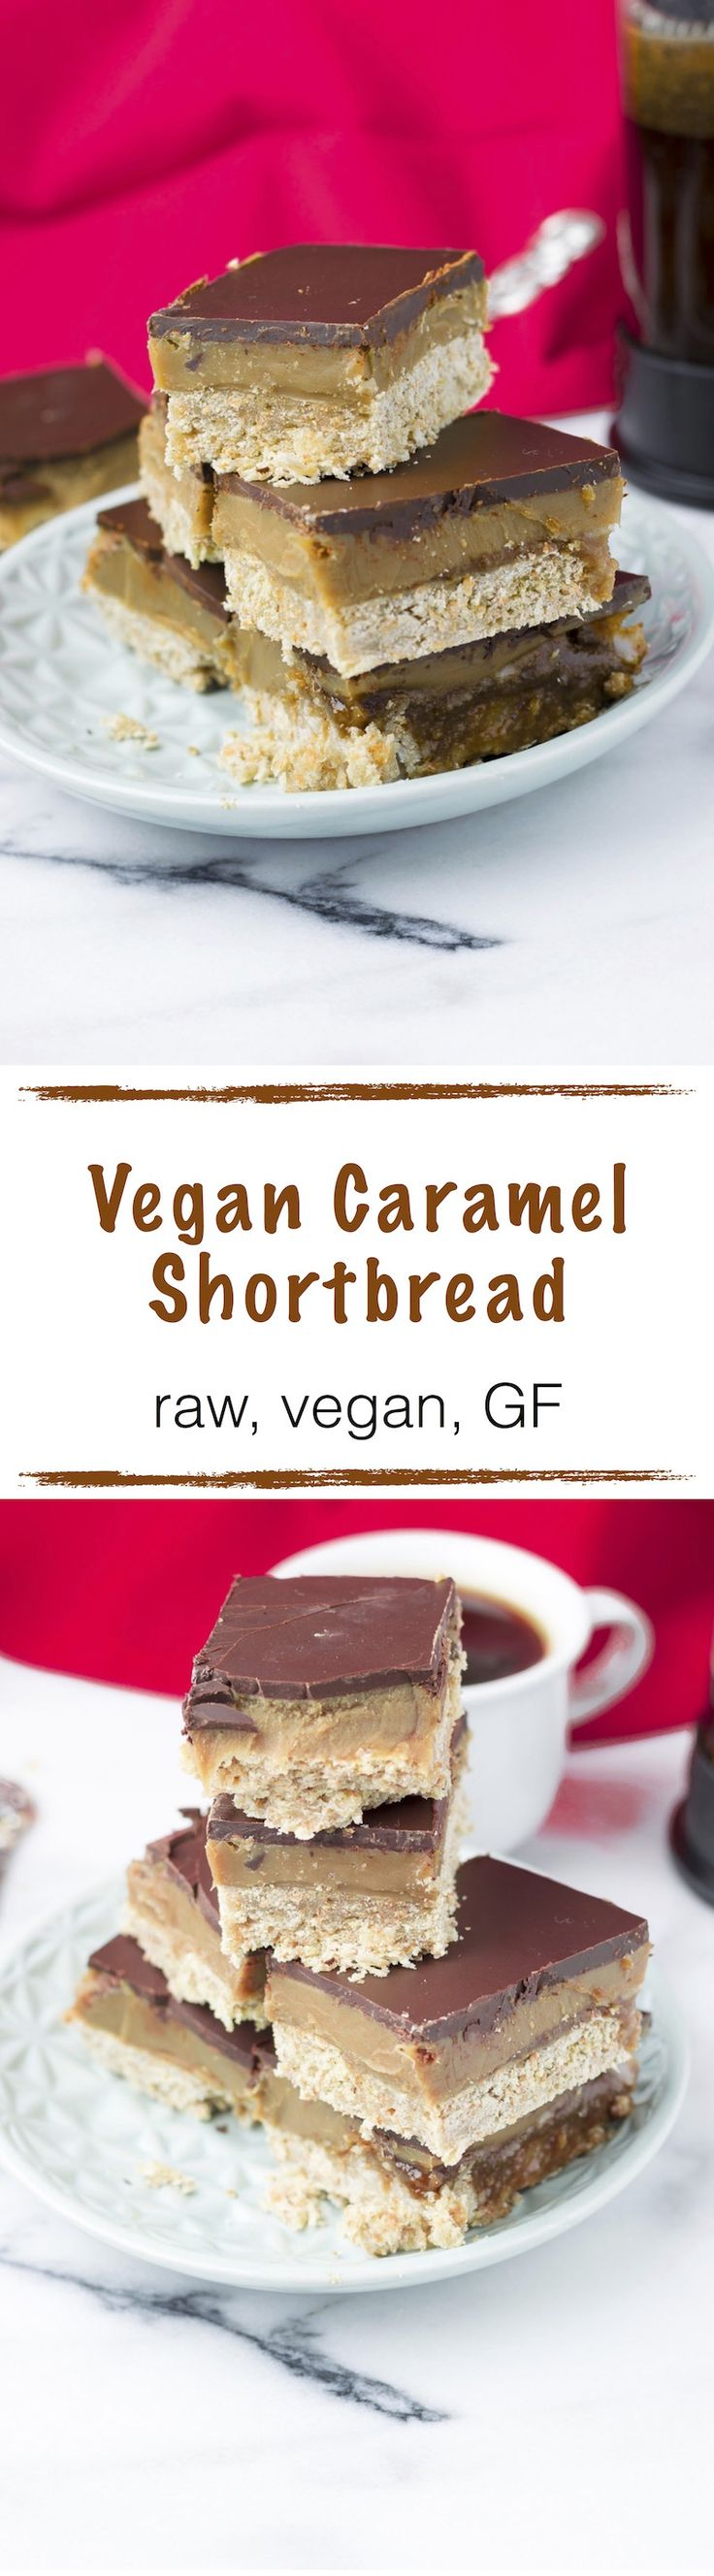 My #Vegan Caramel Shortbread is an indulgent shortbread recipe in copycat Twix style. Made in three steps from only 6 #natural ingredients without any processed or artificial flavors. Not long and you have the most indulgent #dessert you ever taste. I promise this easy recipe has it all a delicious cake base, a sinful, creamy caramel and last but not least chocolate to satisfy your cravings.